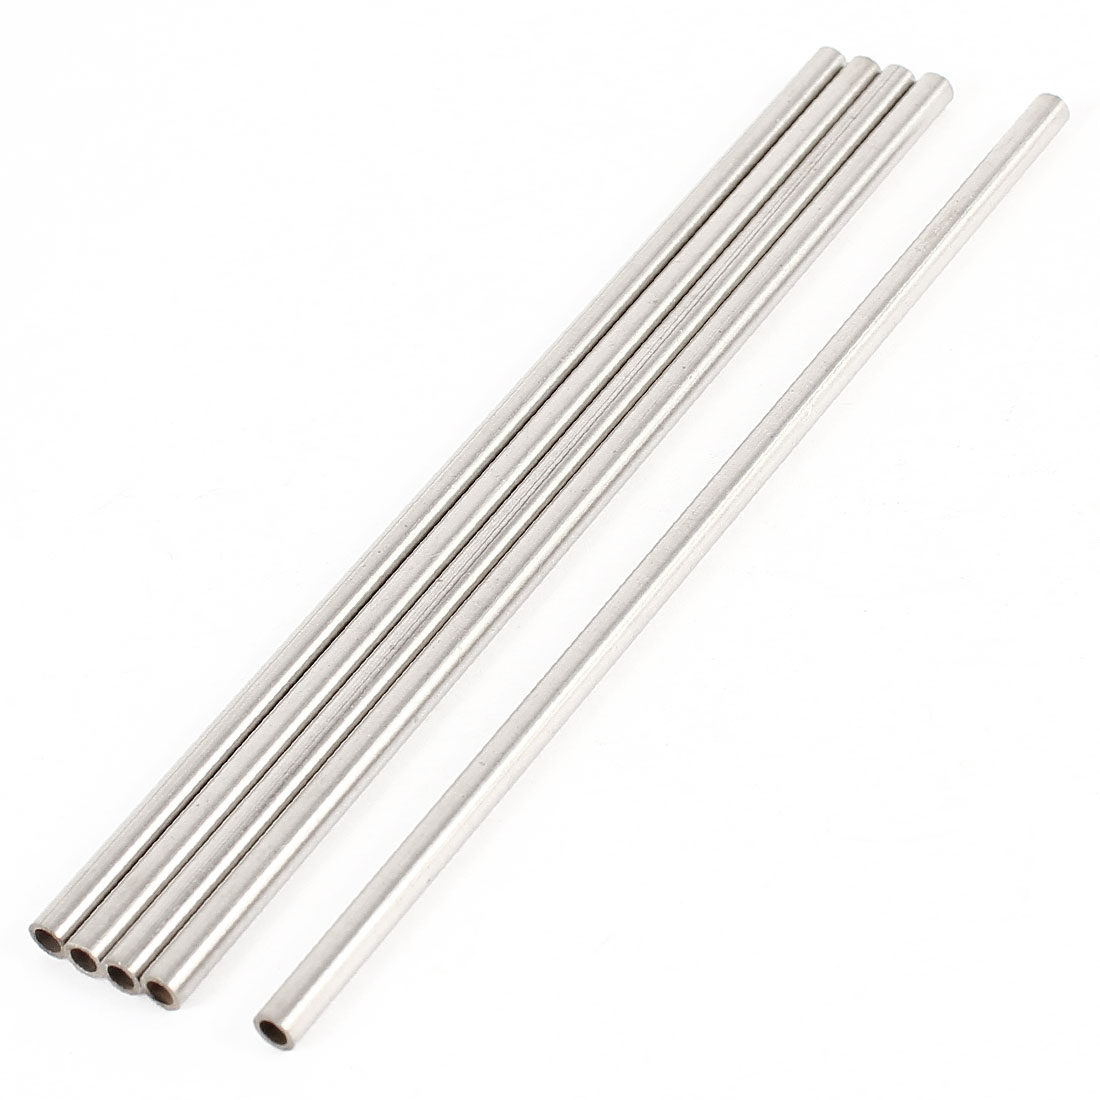 DIY Car RC Helicopter Model Stainless Steel Hollow Shaft Rod 100mmx3mmx2mm 5 Pcs